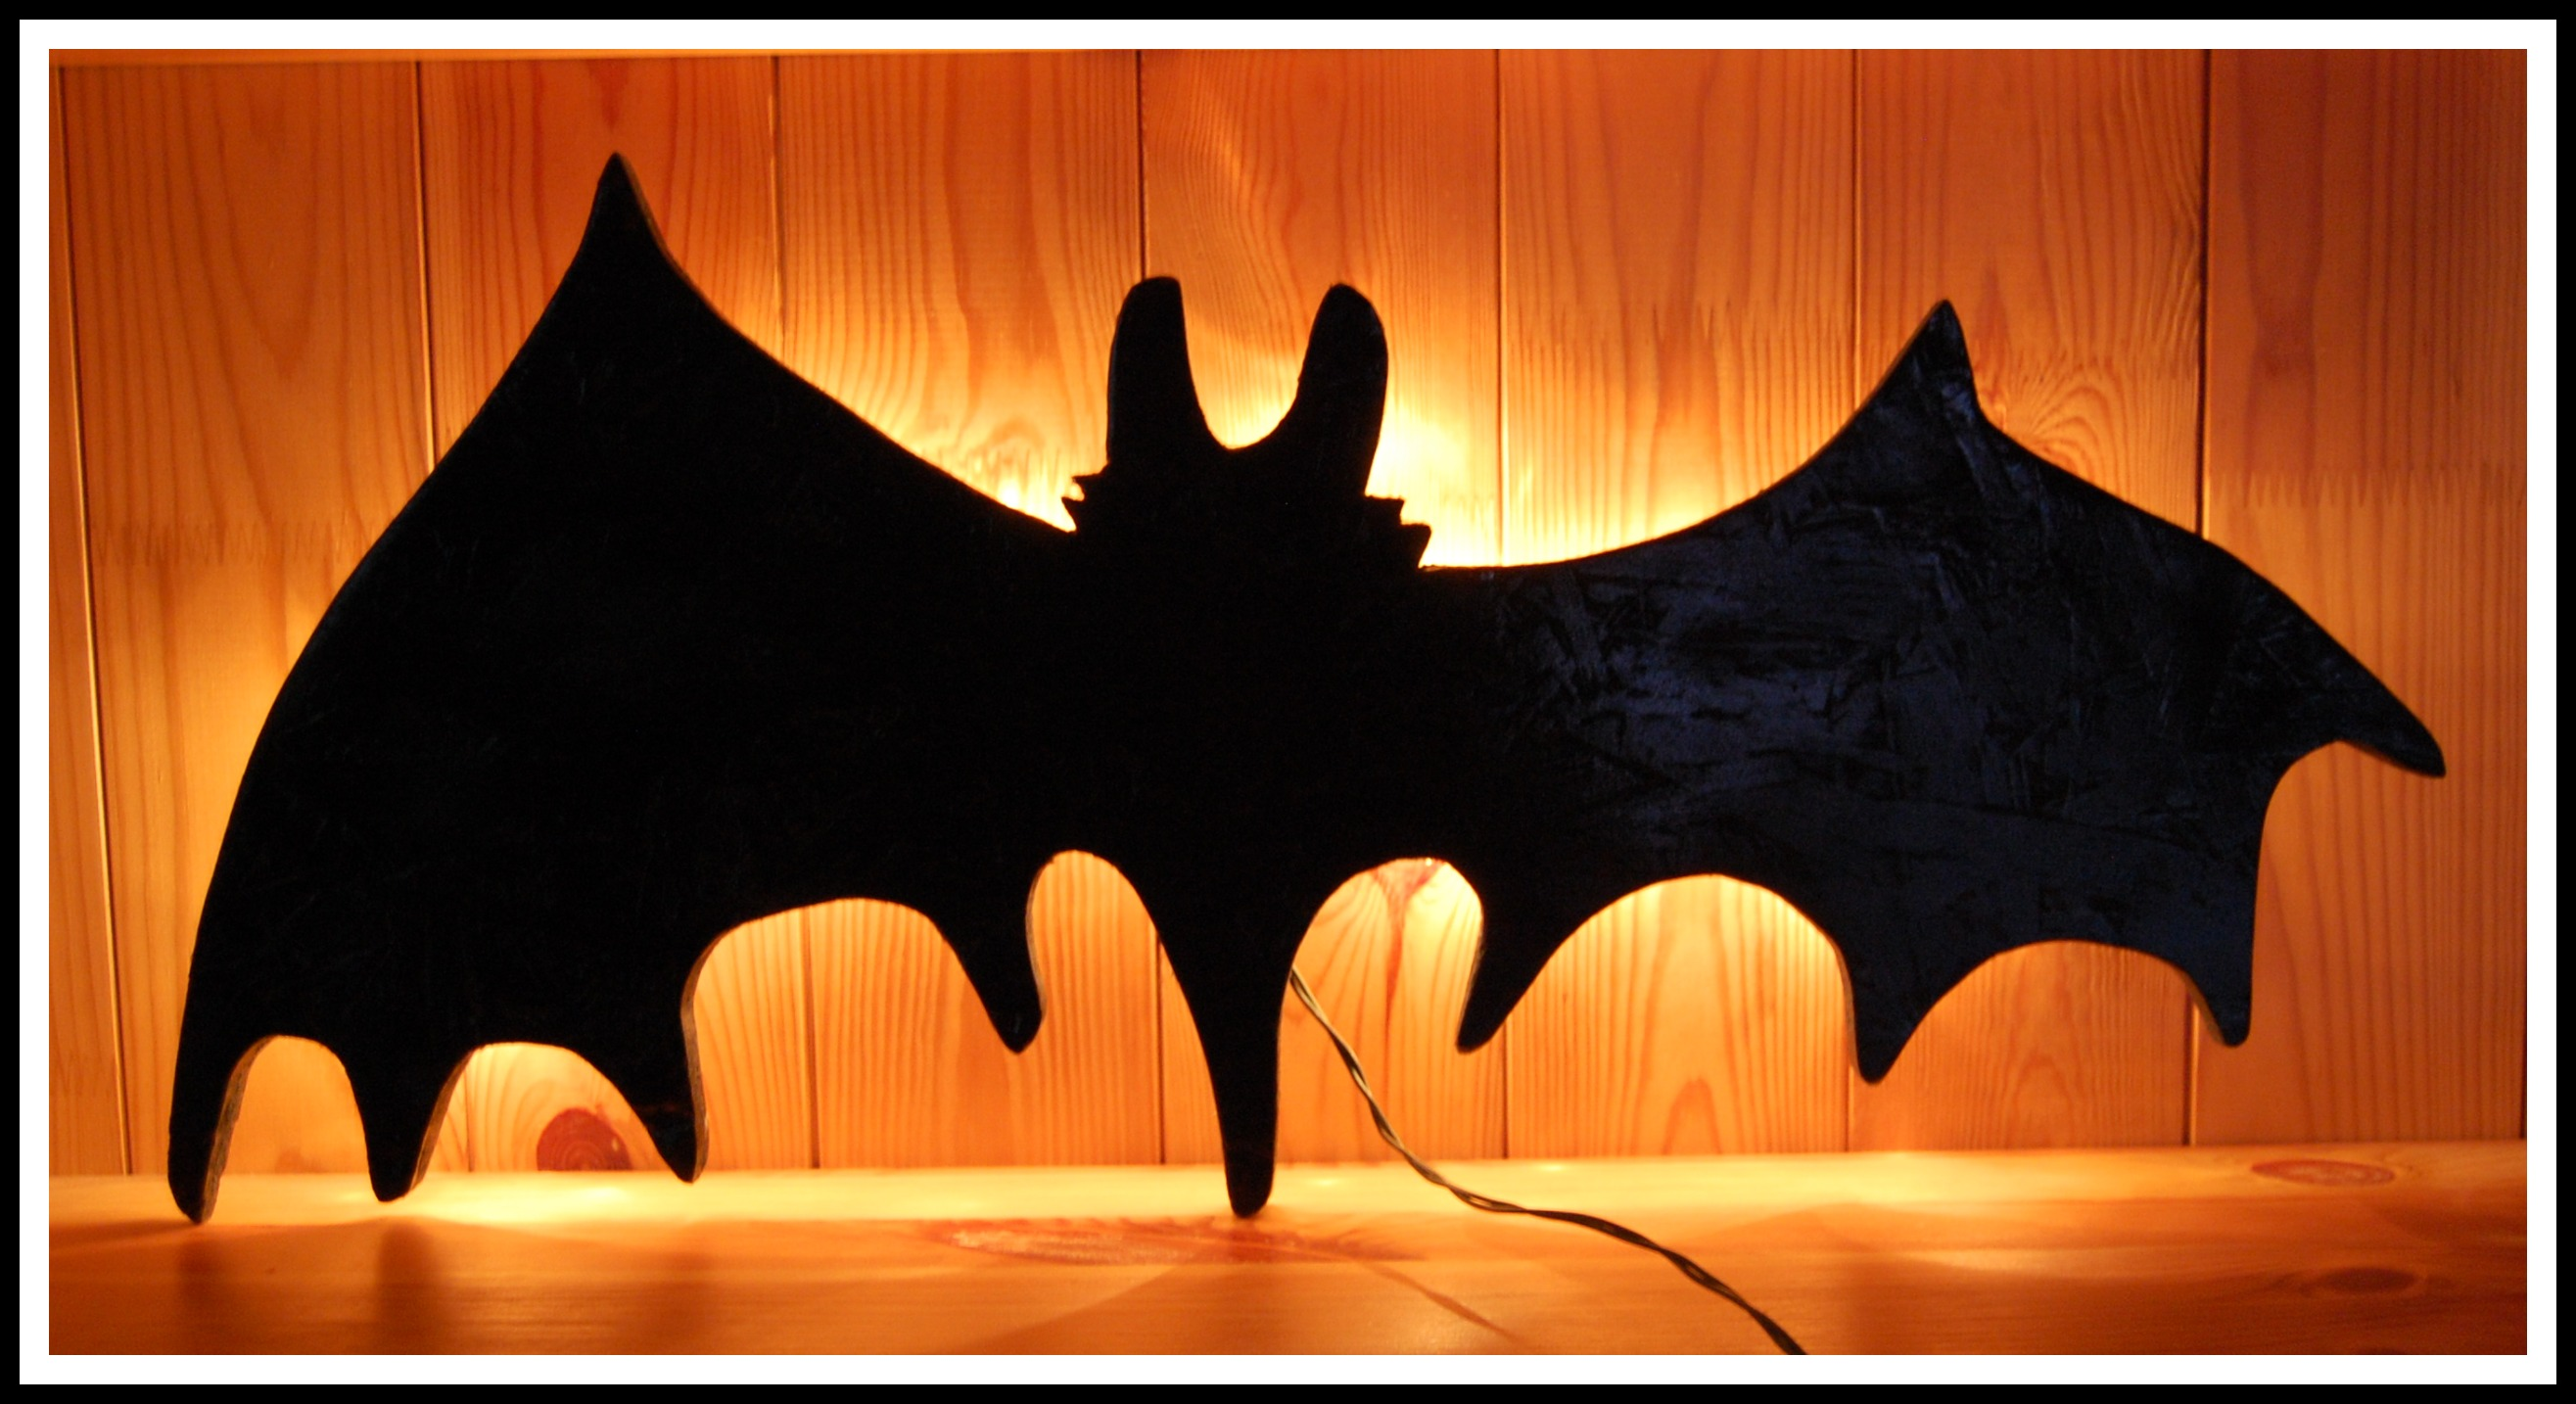 remember the neat bat that mommy made from wood but she got creative this morning and really changed up the bat into an awesome halloween decoration - Bat Halloween Decorations